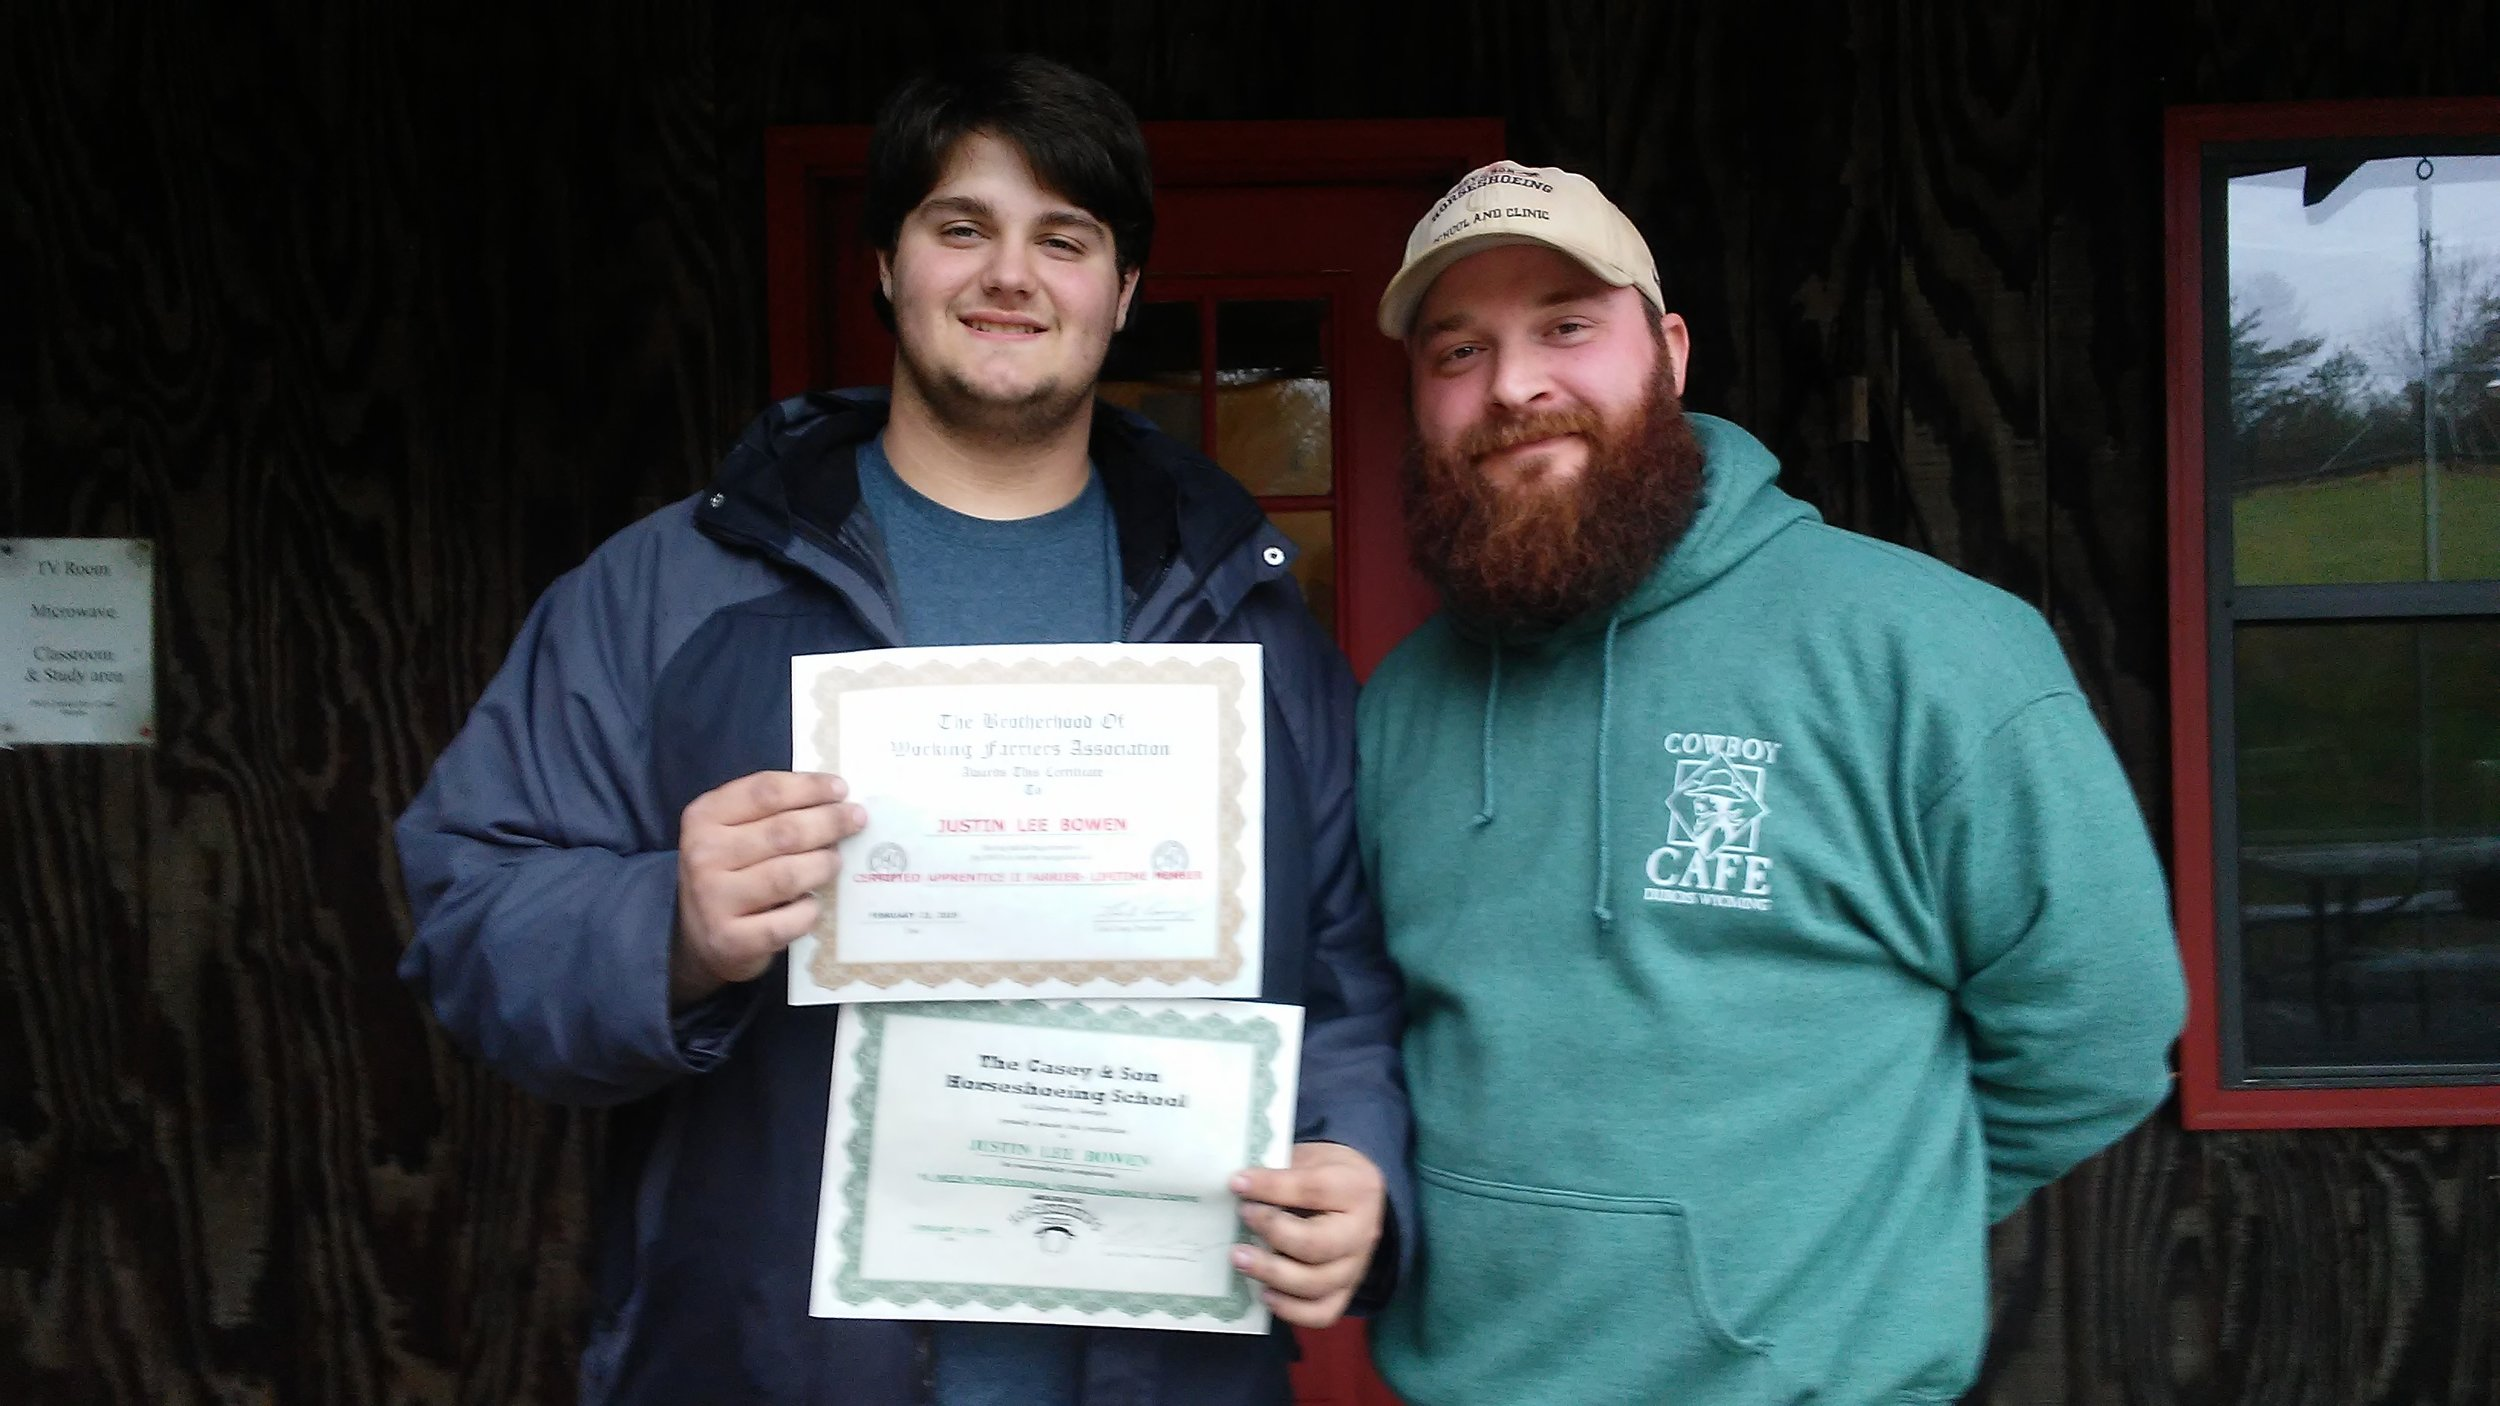 Justin Lee Bowen of Chatsworth, GA Completed his 18 week Farrier Course recieved his BWFA Certification 2.23.2019 here with Link Casey. His Uncle is Jarvis Bowen, BWFA Master Farrier & Tester..jpg